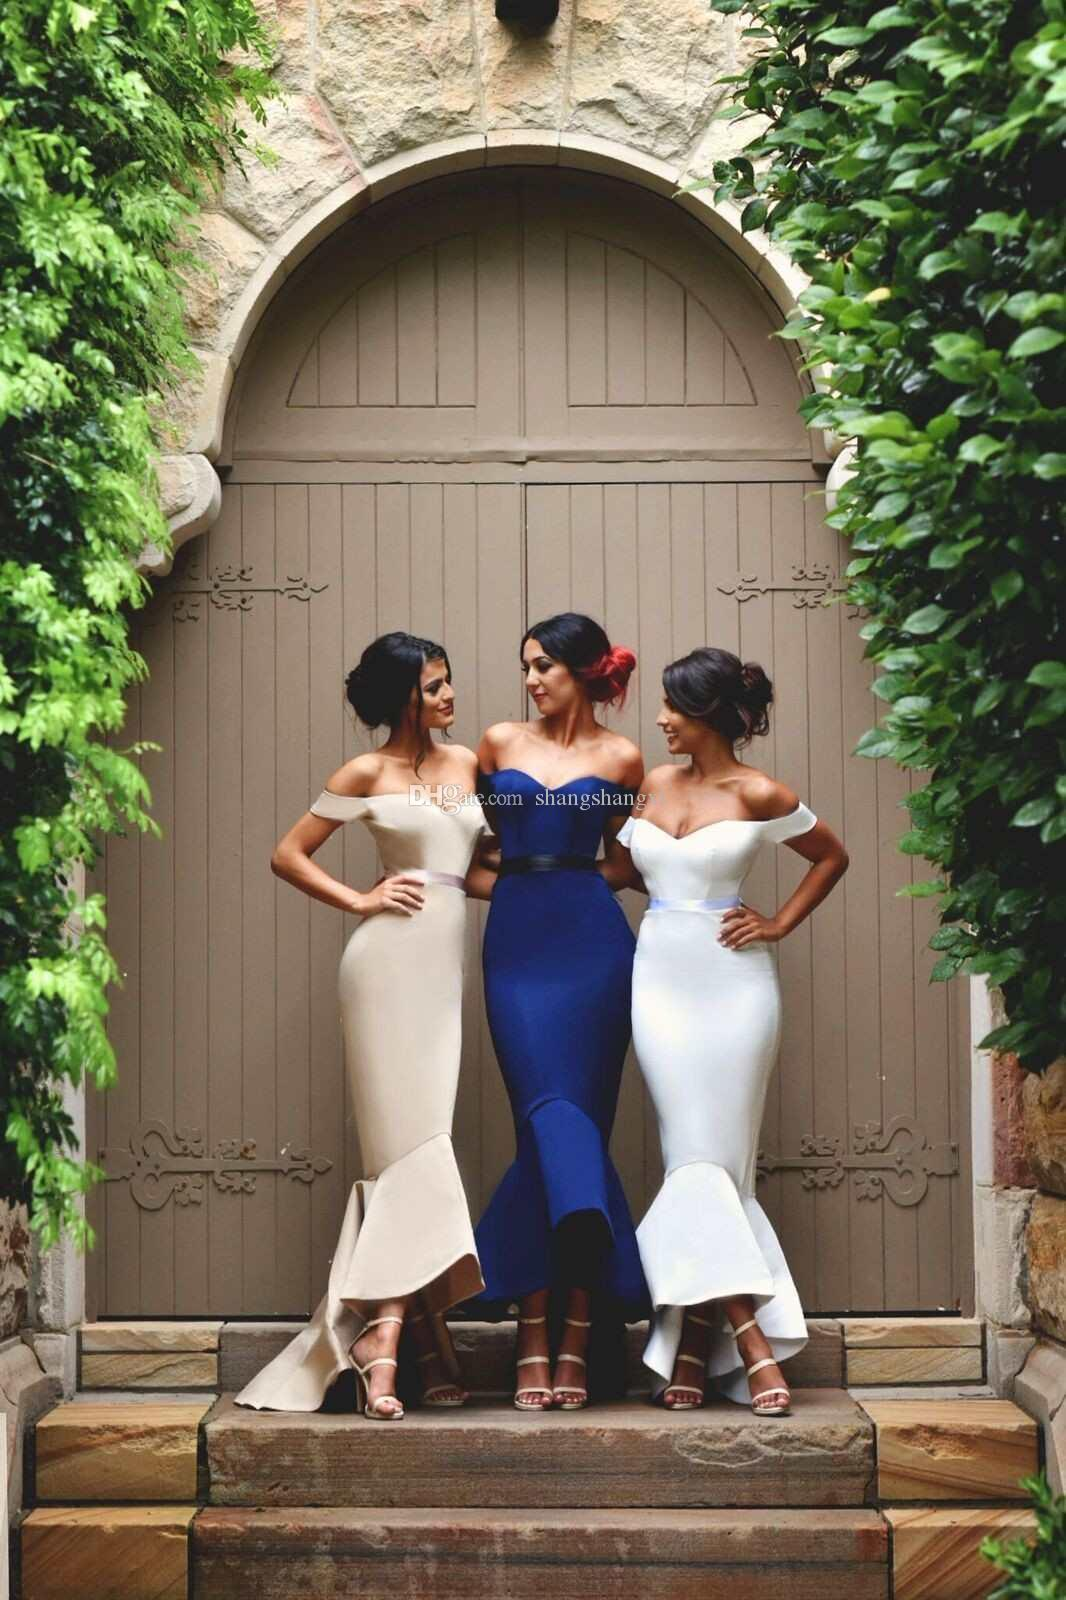 Country plus size bridesmaids dresses off the shoulder high low country plus size bridesmaids dresses off the shoulder high low 2017 mermaid sleeveless backless sexy wedding gowns bow champagne royal blue beach wedding ombrellifo Gallery